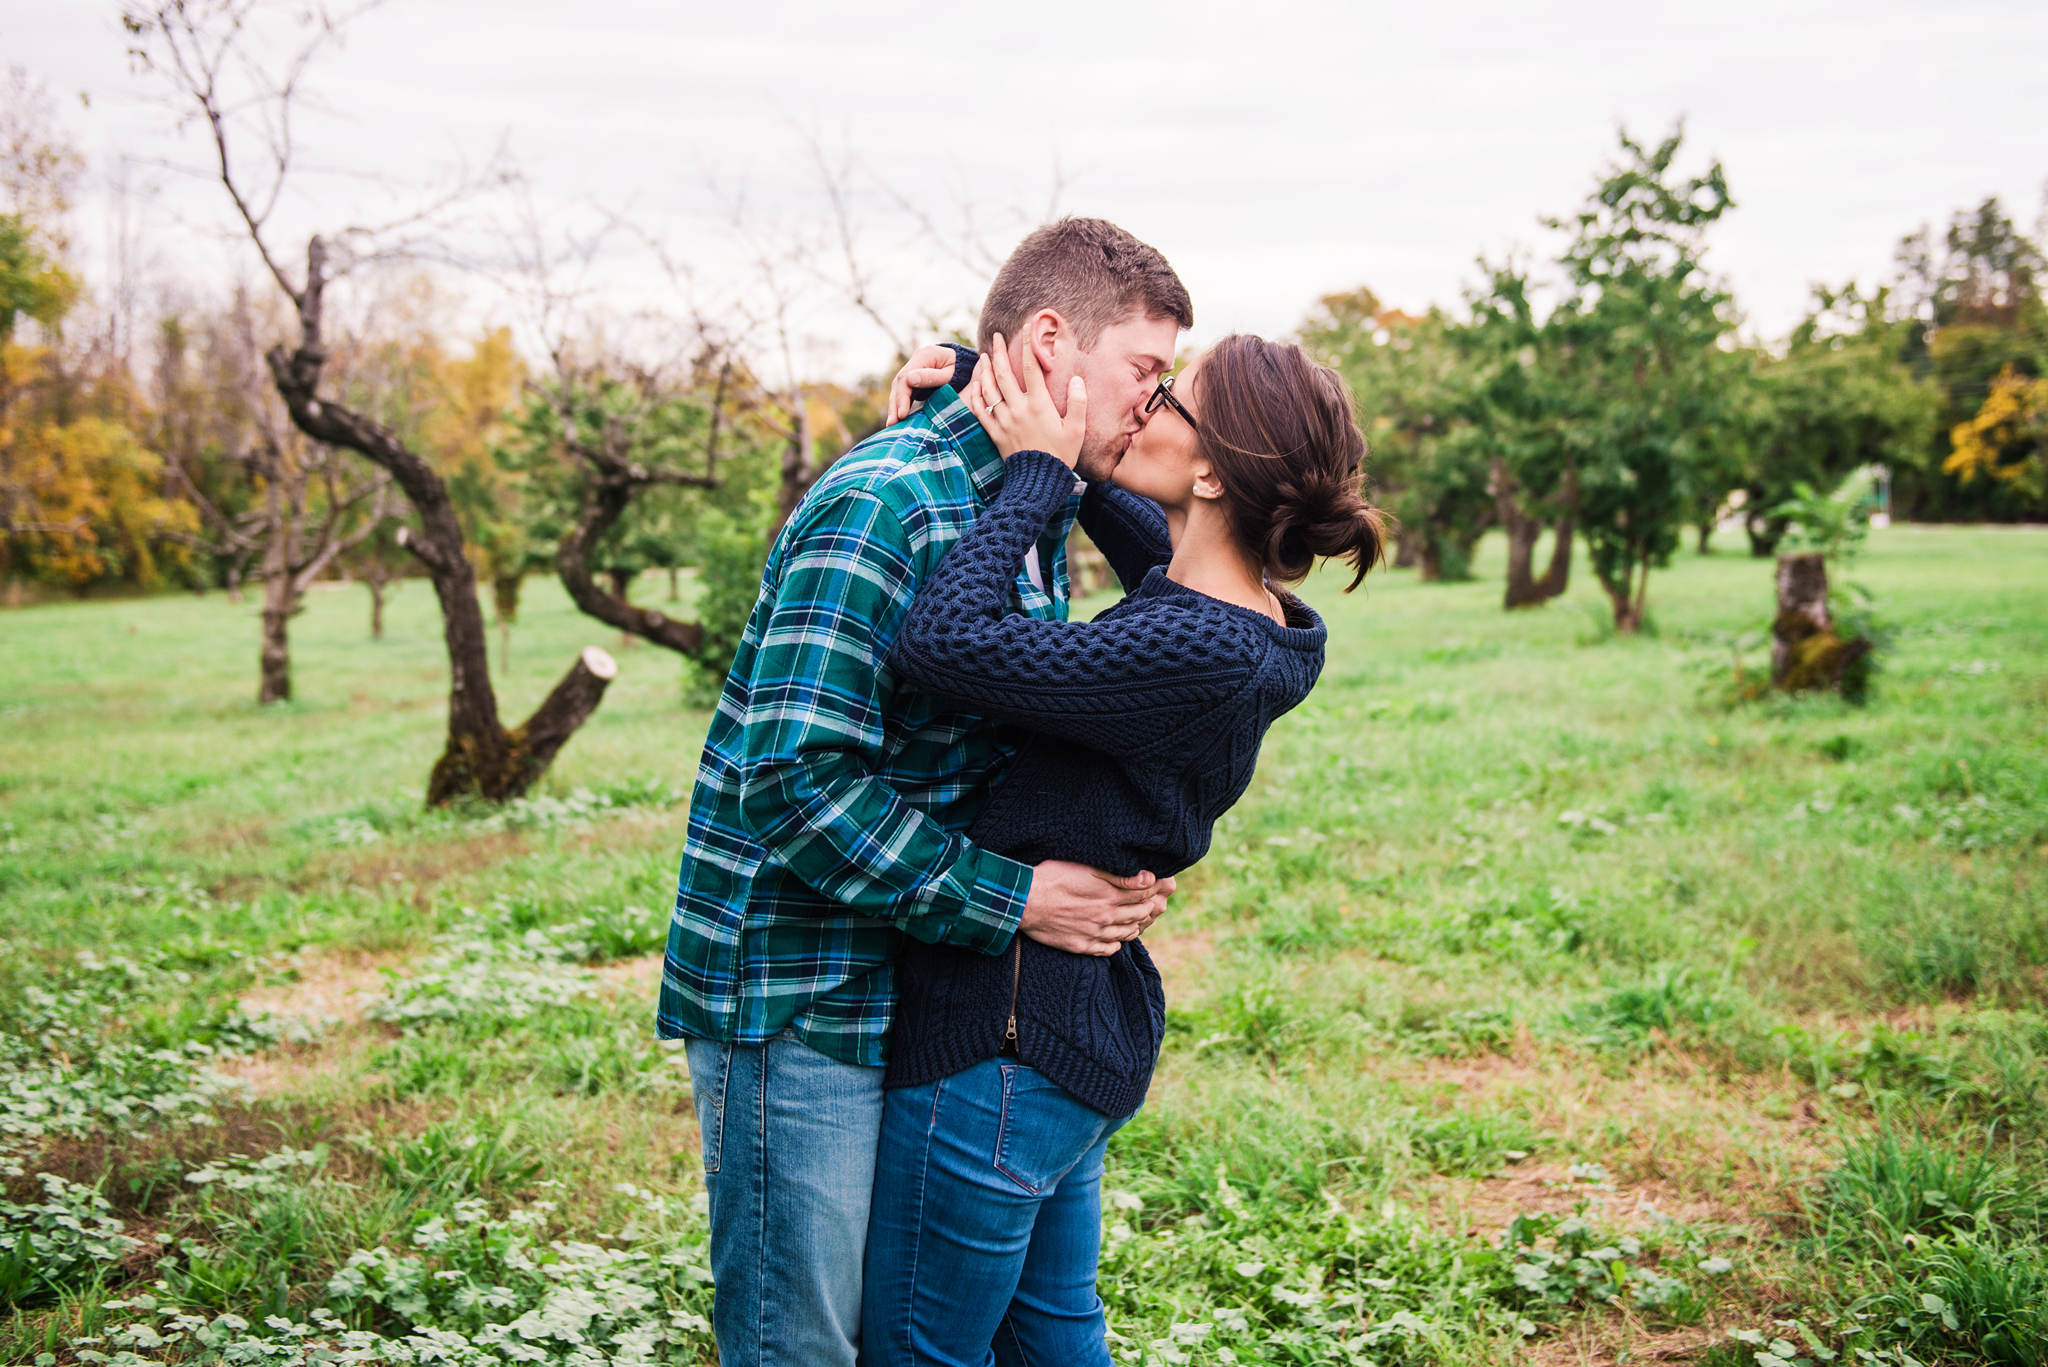 Hurd_Orchards_Rochester_Engagement_Session_JILL_STUDIO_Rochester_NY_Photographer_DSC_1878.jpg